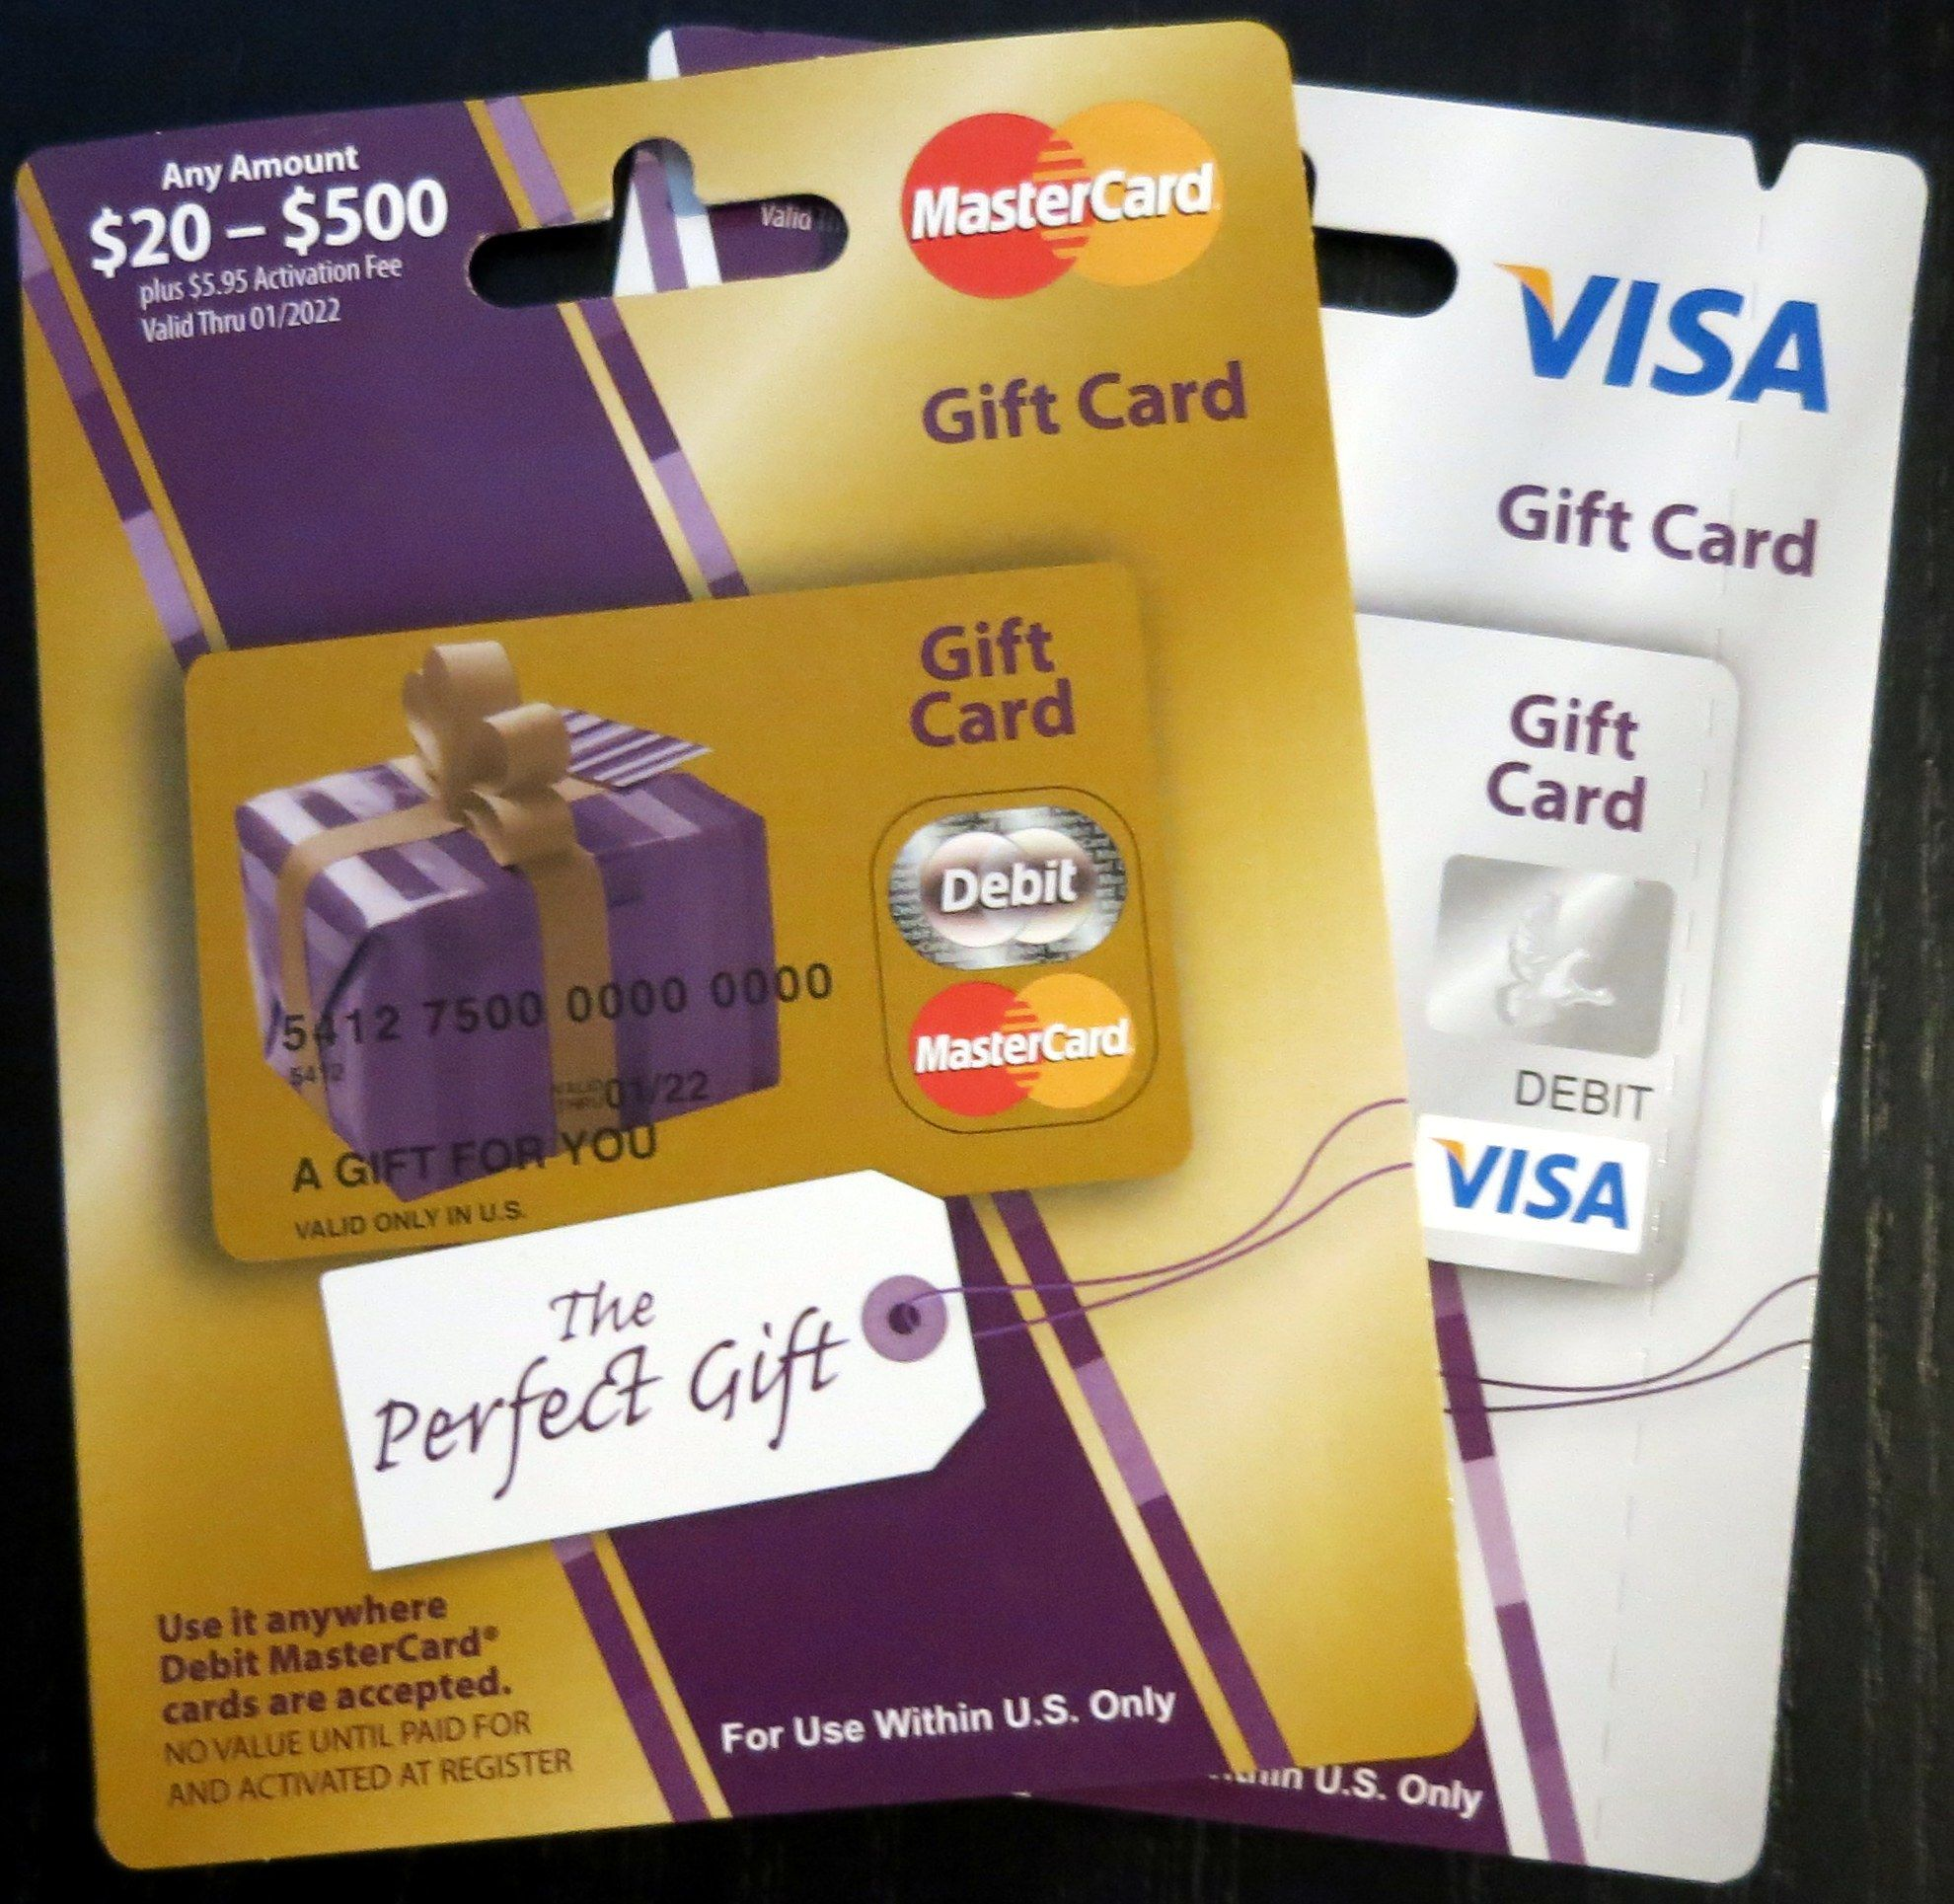 how to get free visa gift card codes https www com pin - Earn Free Visa Gift Cards